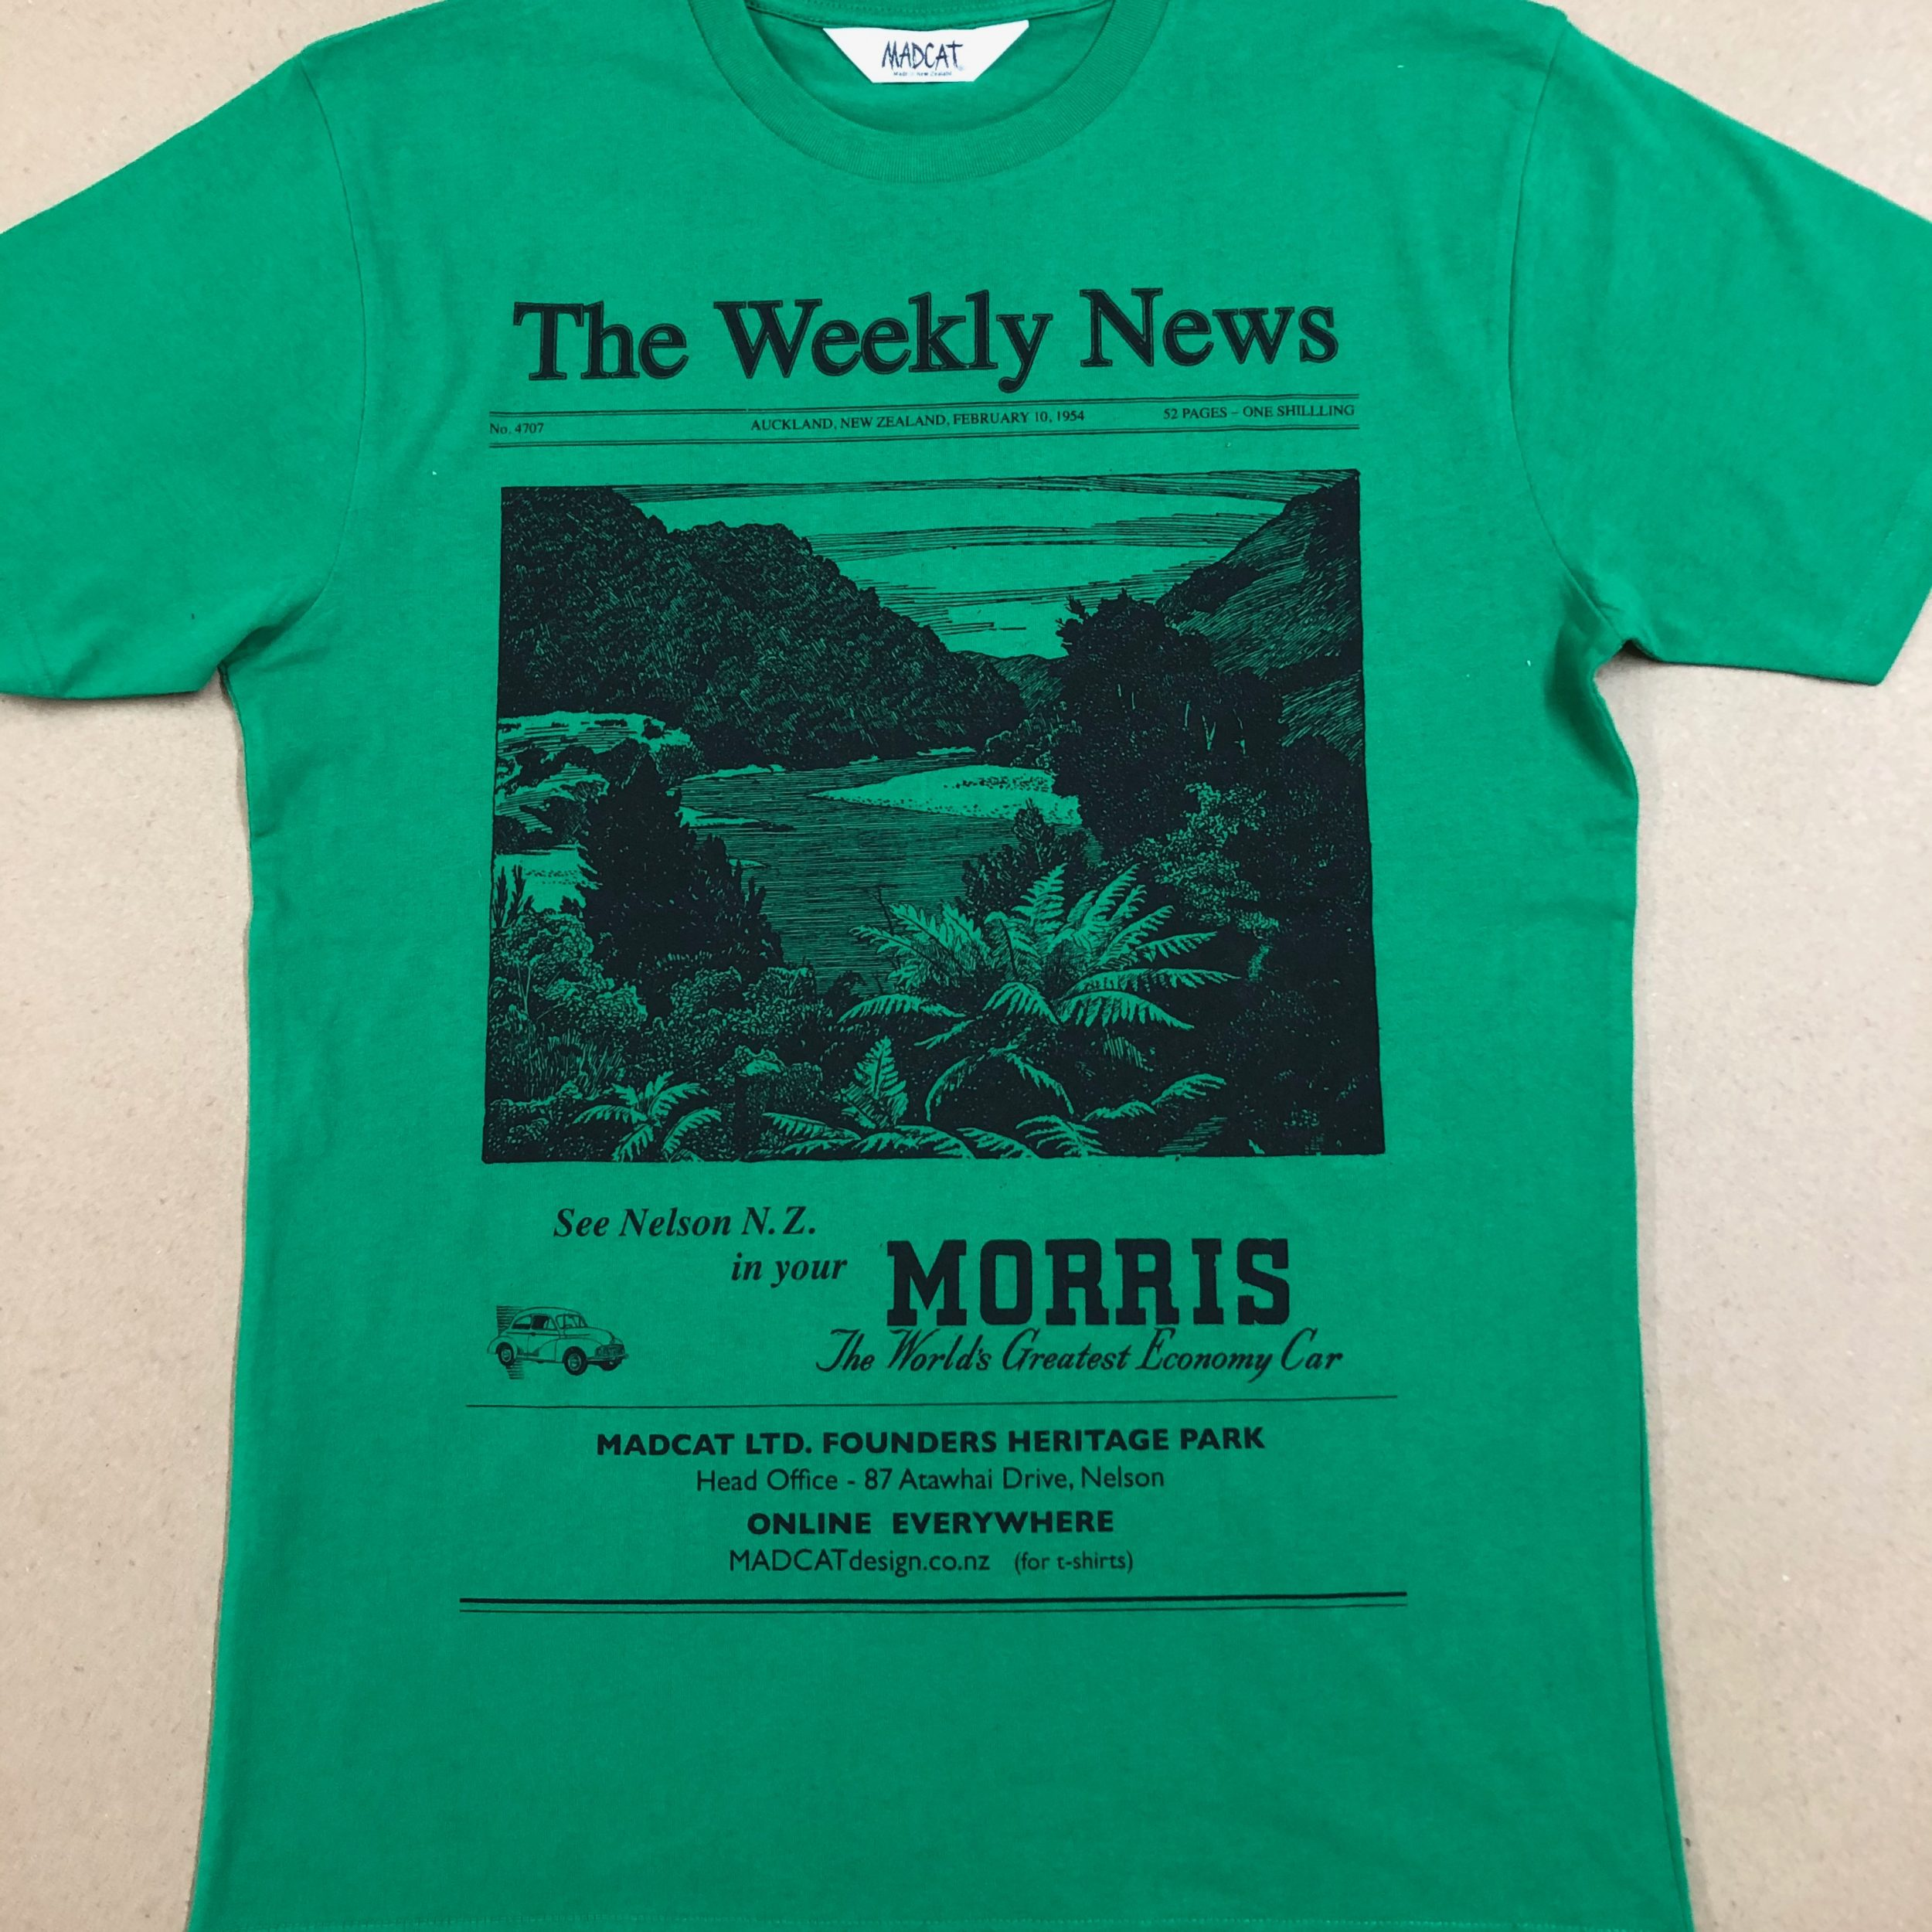 The Weekly News T shirt for Men, Green